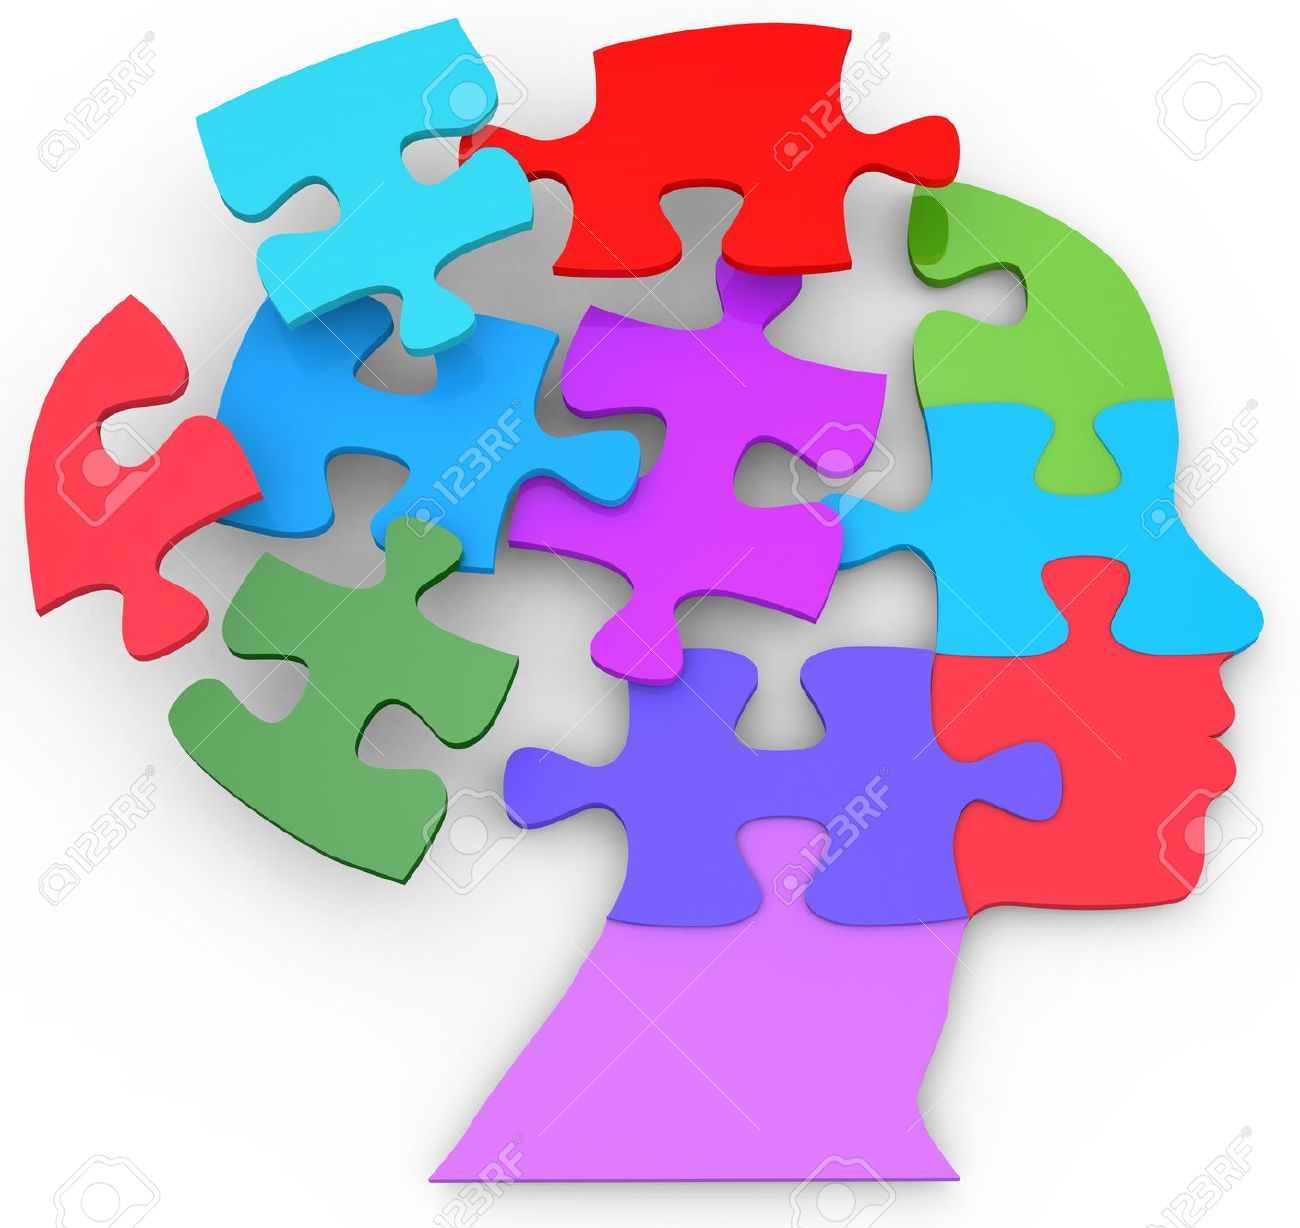 Head Of A Woman As Mind Thought Problem Jigsaw Puzzle Pieces Stock Photo